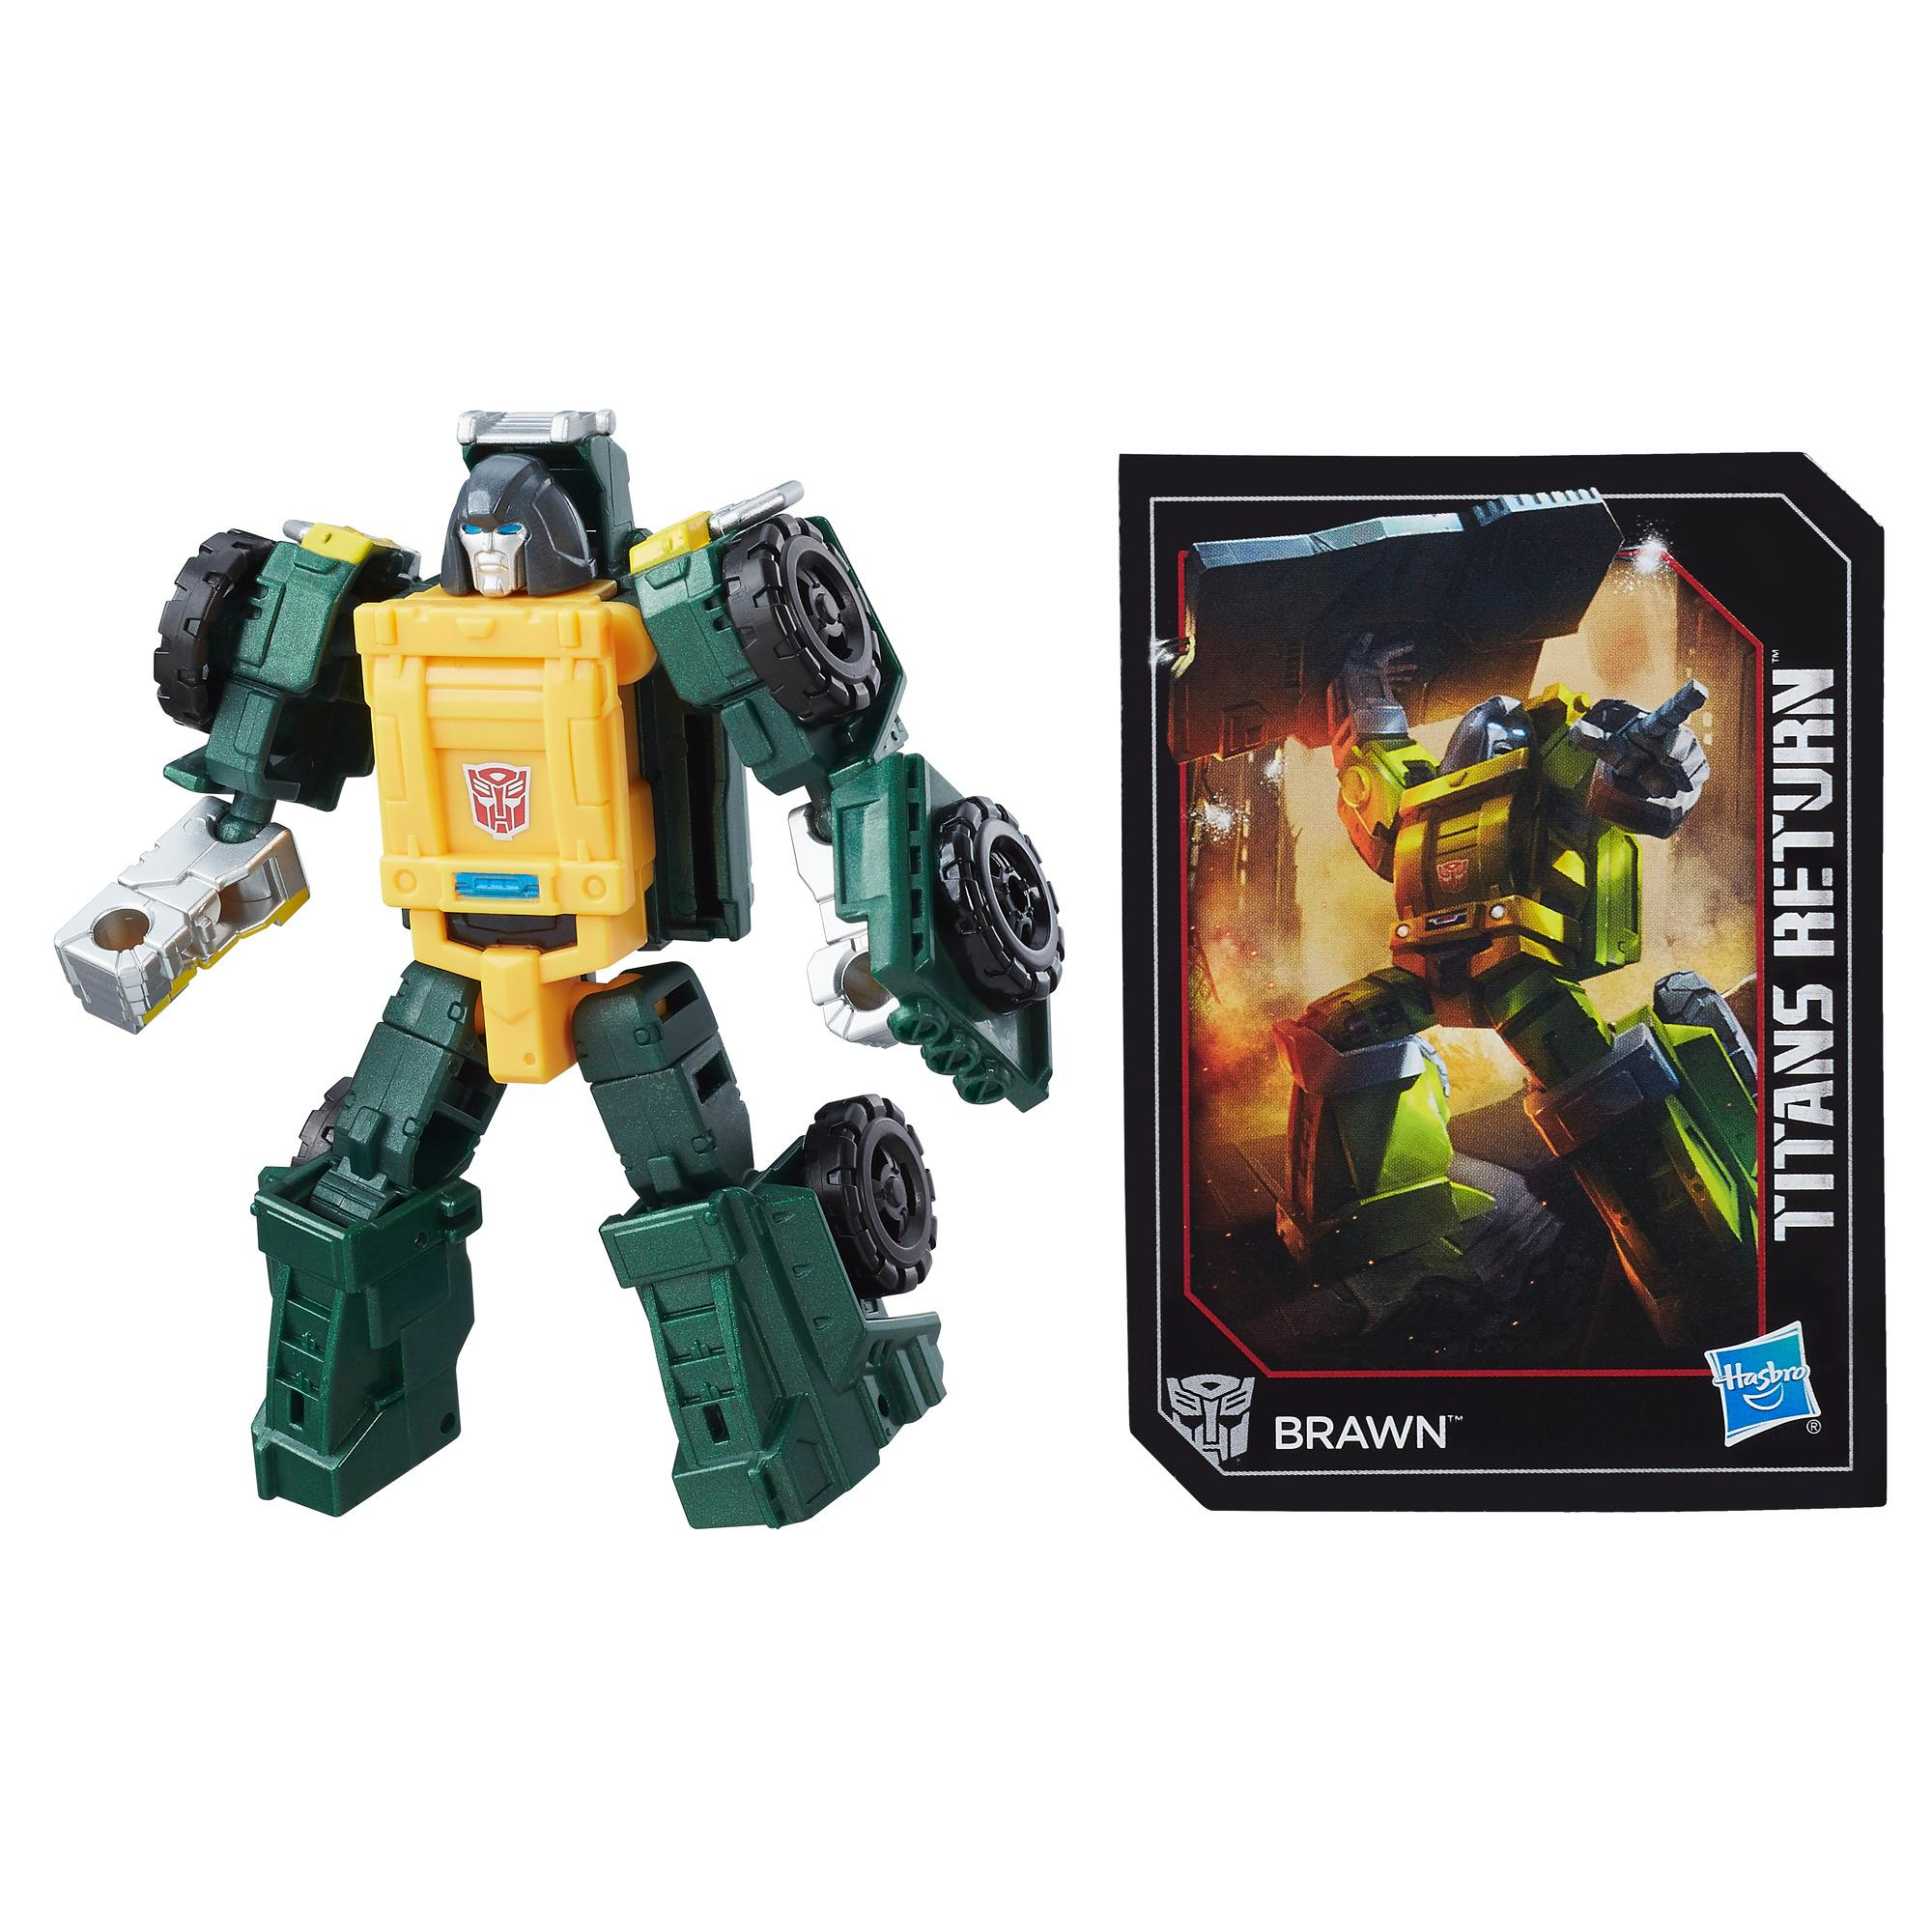 Transformers Generations Titans Return Legends Class Brawn